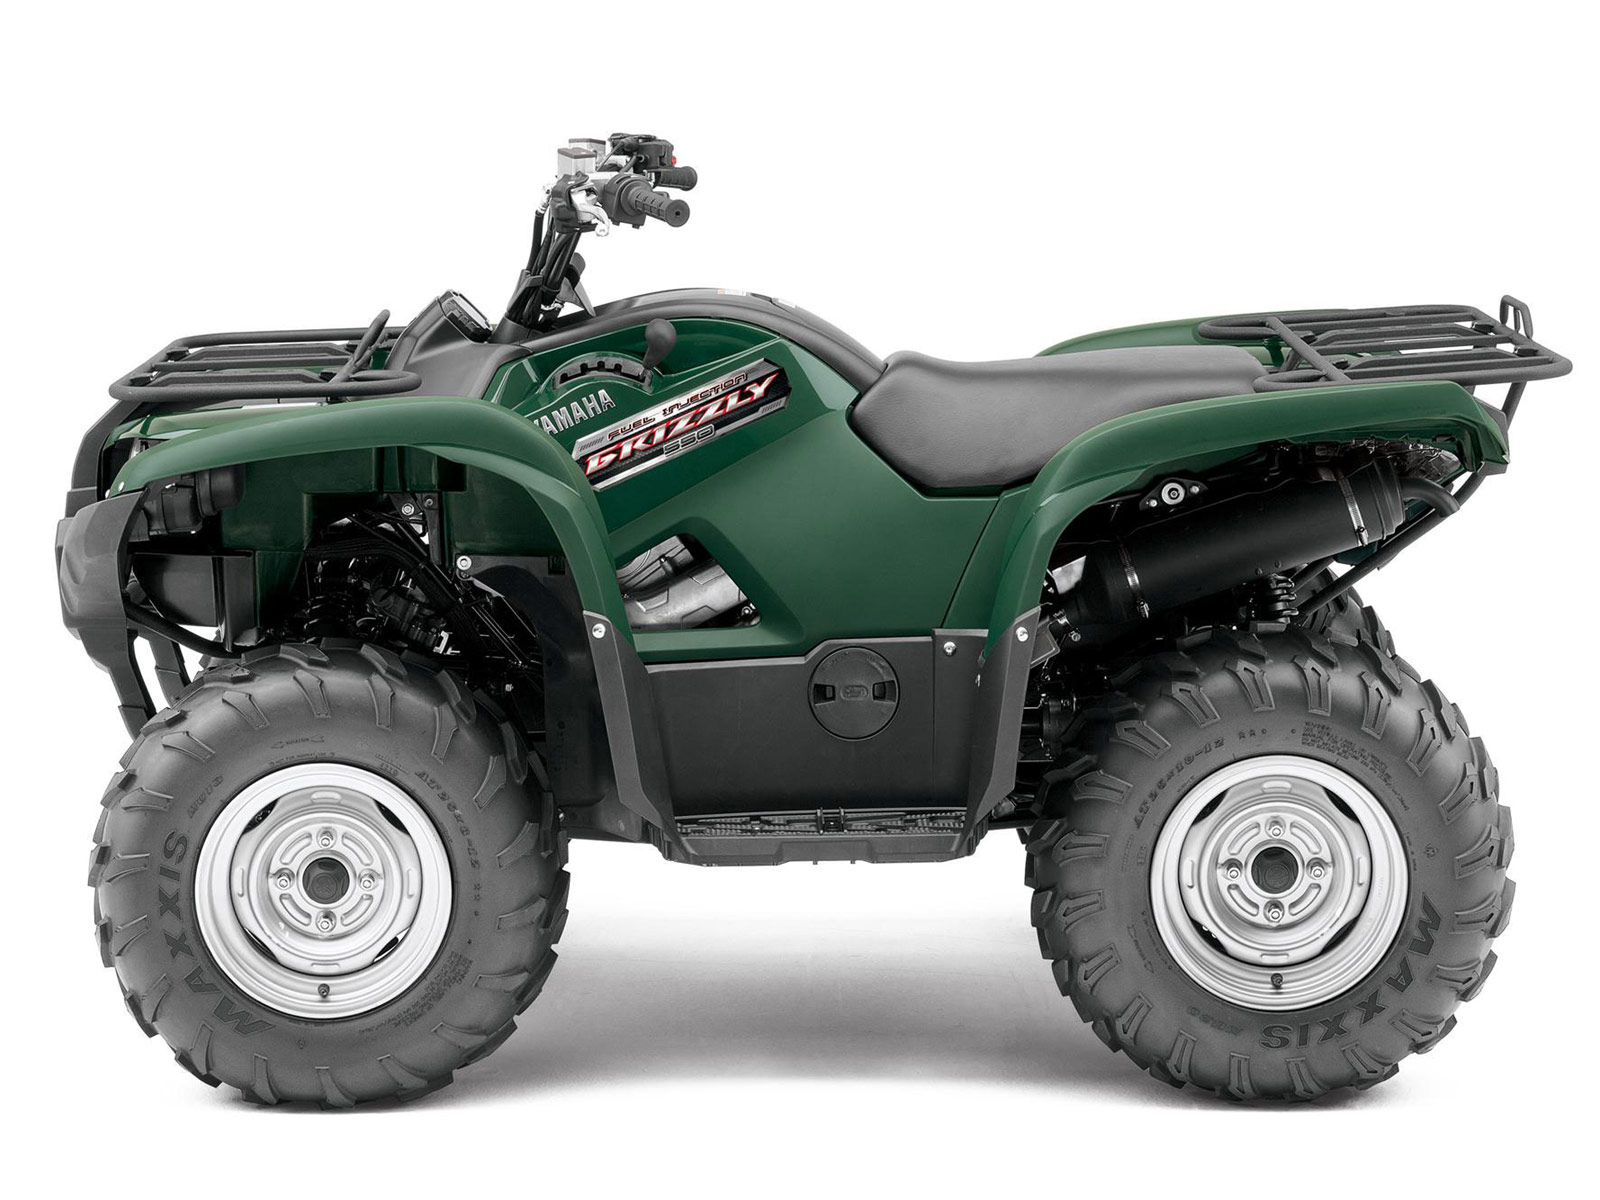 2013 yamaha grizzly 550 reviews autos post. Black Bedroom Furniture Sets. Home Design Ideas